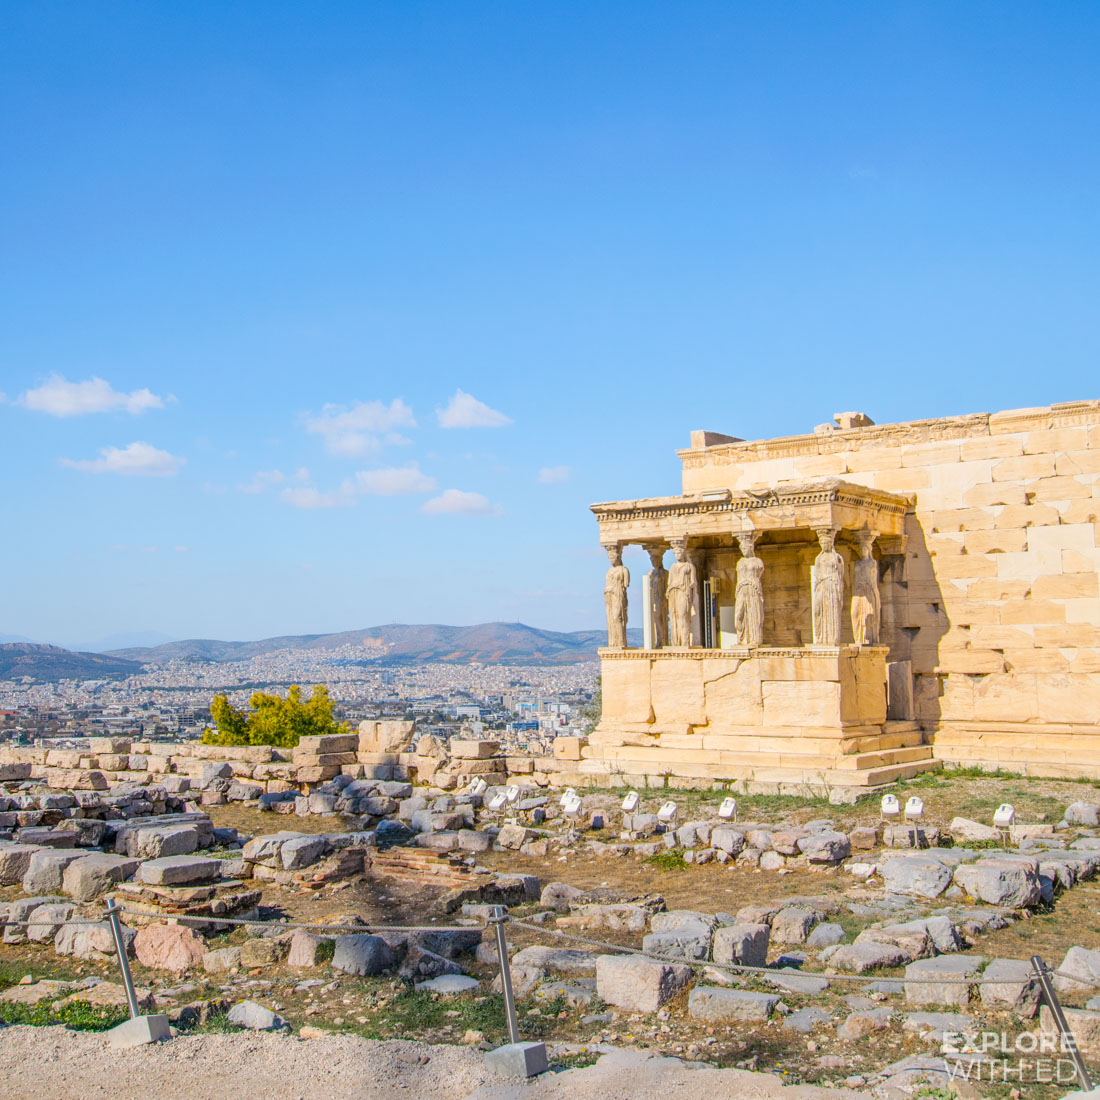 A guided tour of the Acropolis in Athens